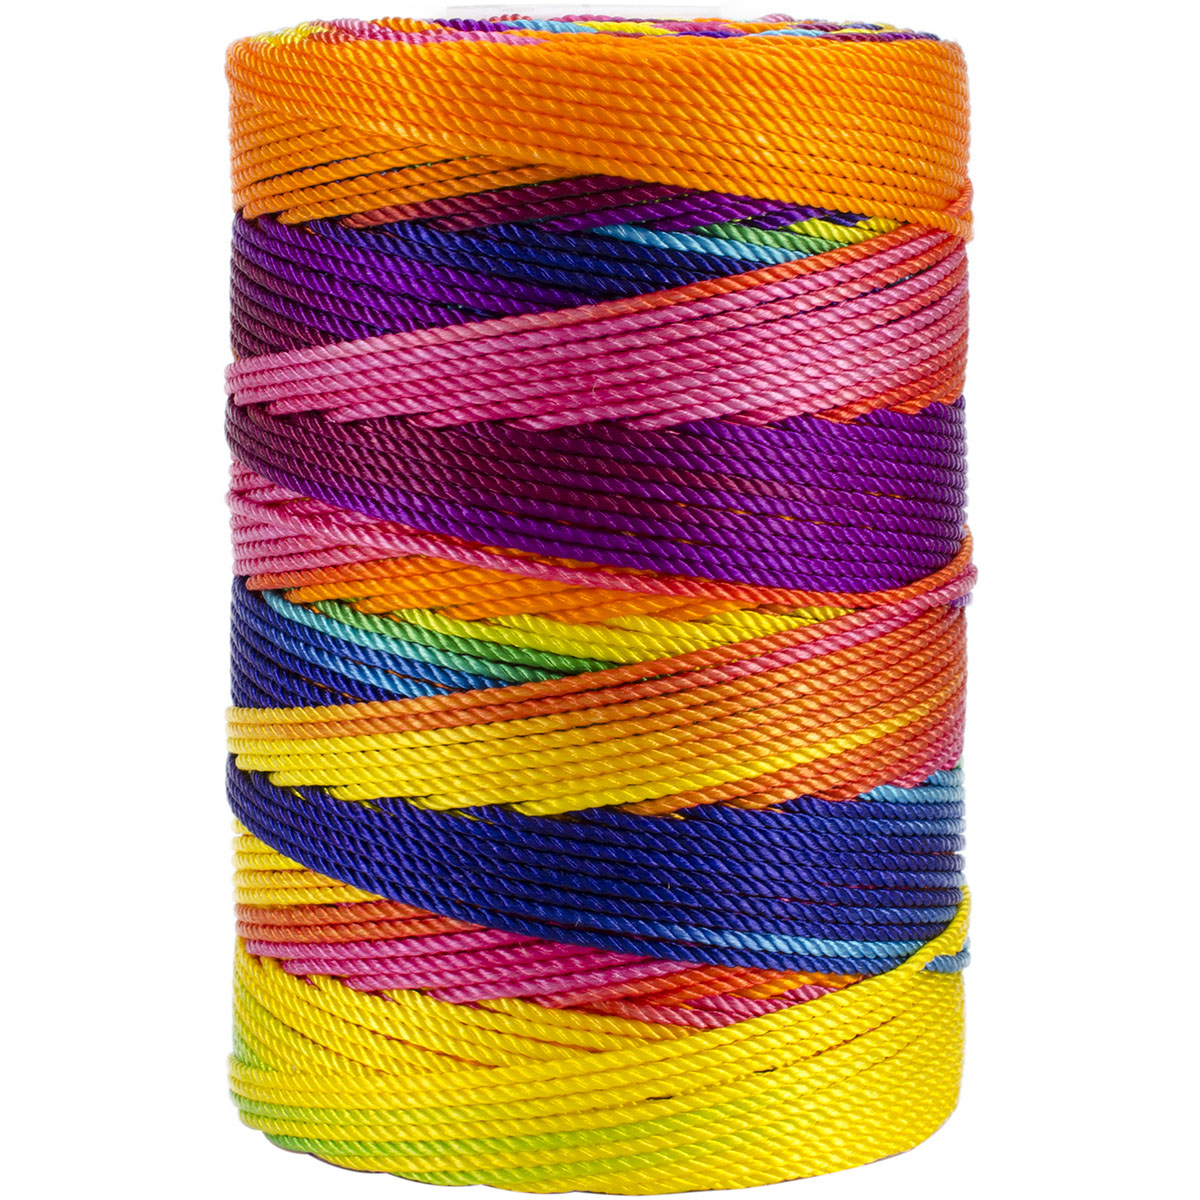 Crochet Thread Sizes : ... Crochet Thread ? Iris Nylon Crochet Thread Size 18 197 Yards ? Iris